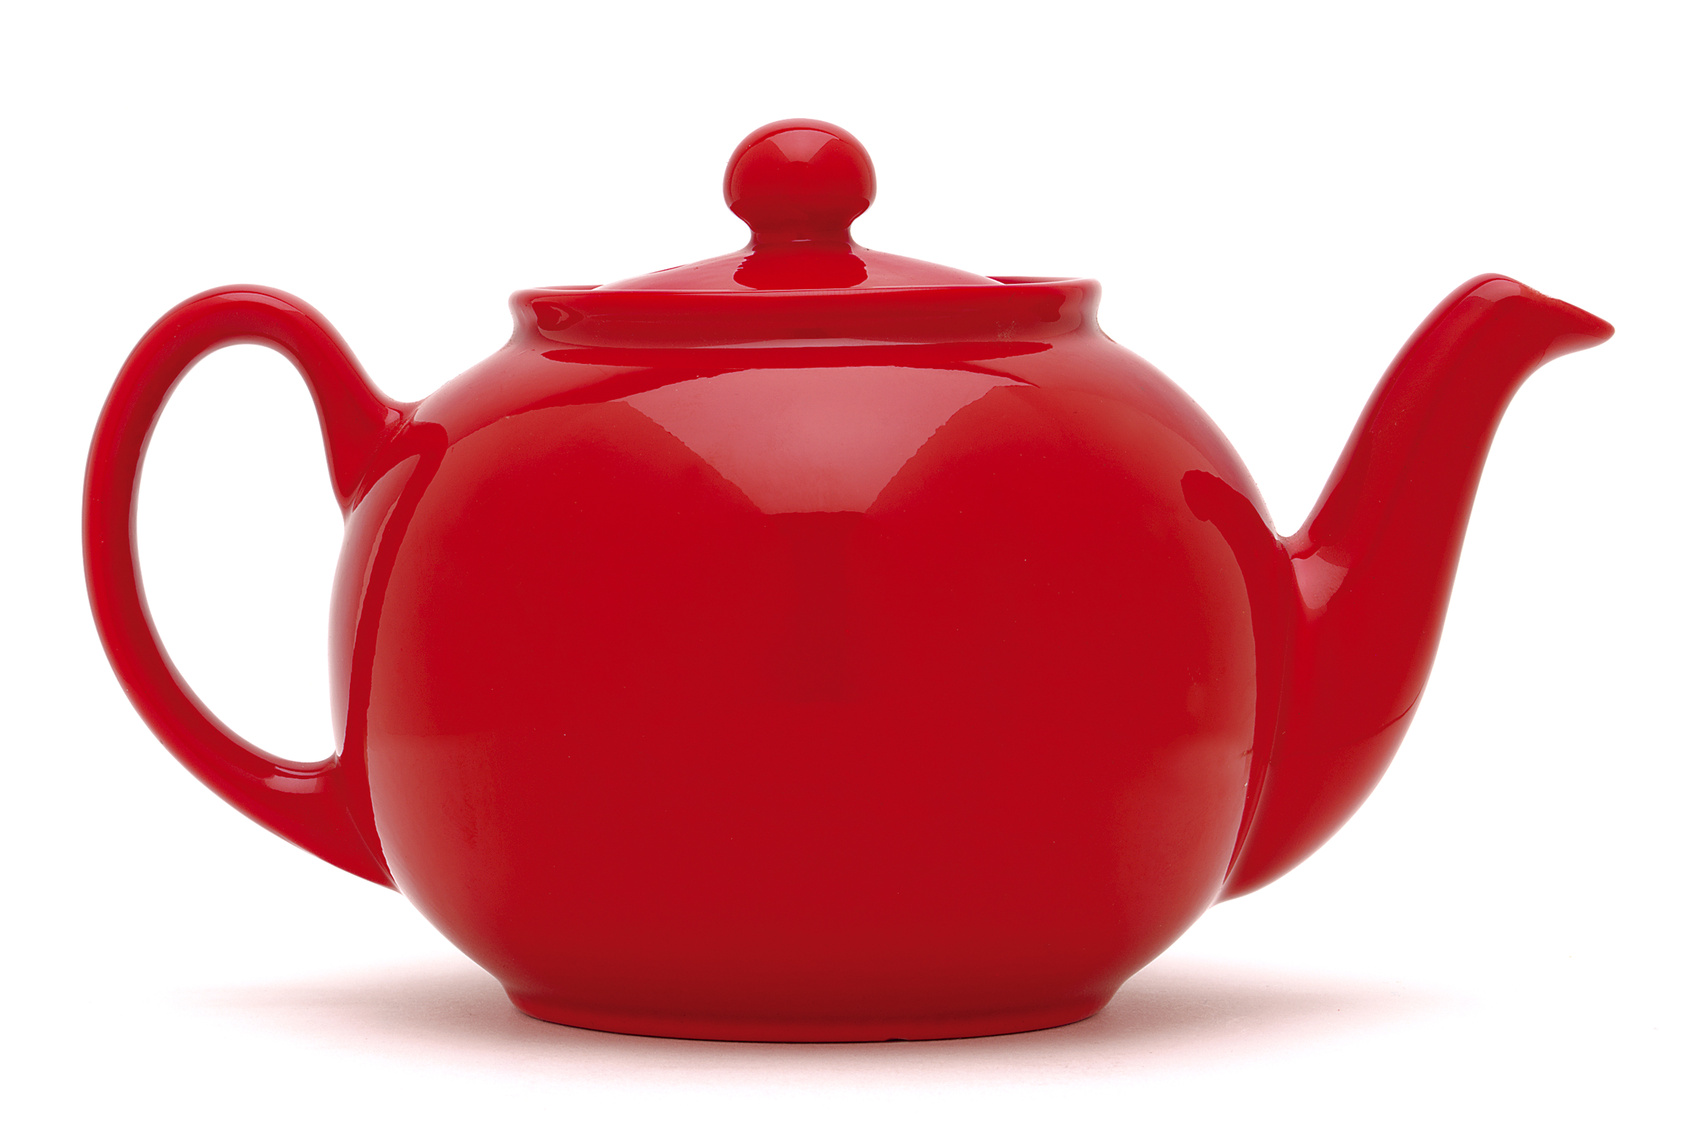 Making Tea In A Teapot About Tea